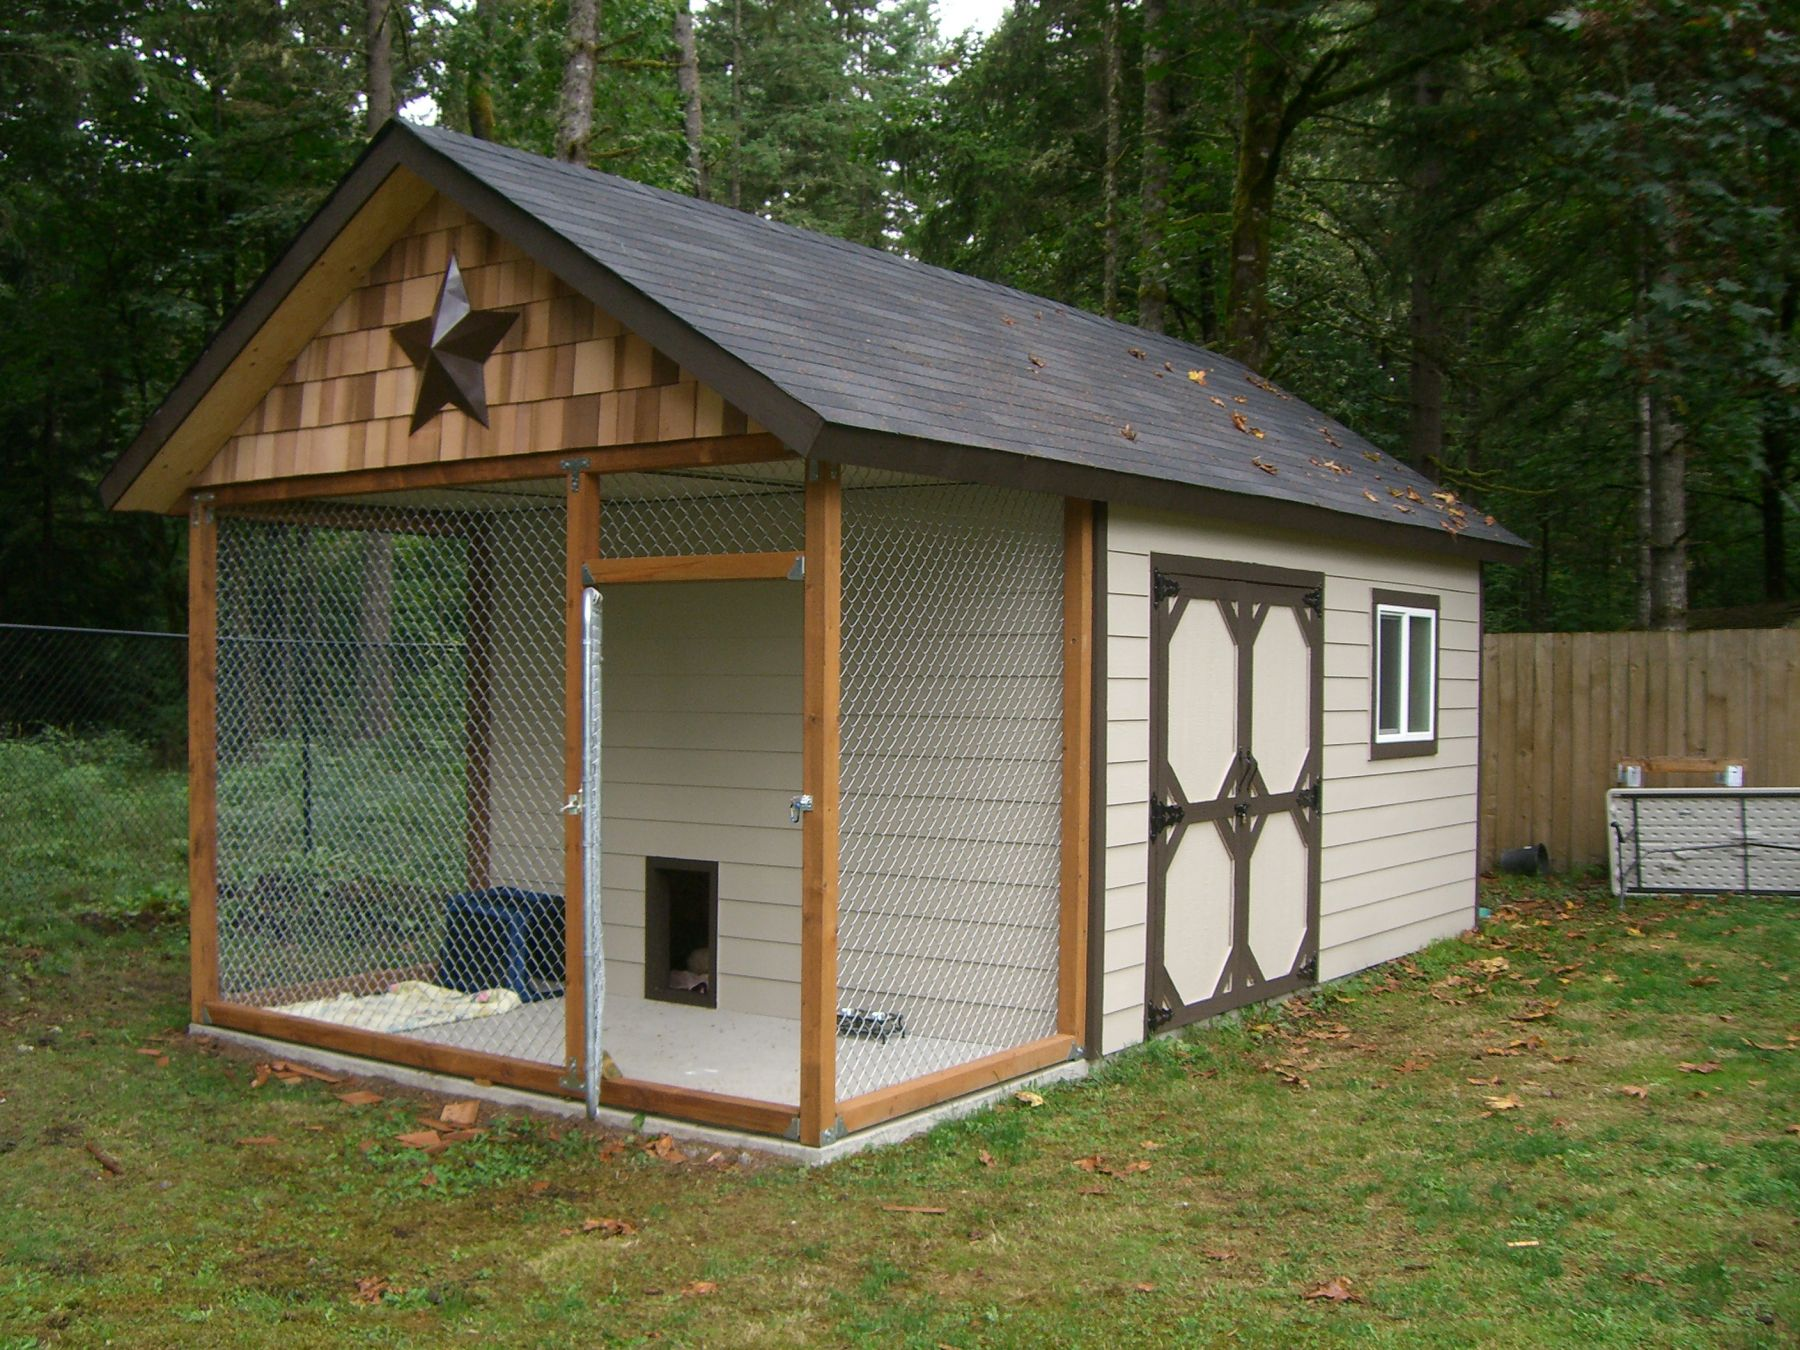 shedhouse Backyard Shed Ideas For Dogs on ideas for backyard cabanas, ideas for backyard trellis, ideas for backyard lighting, ideas for backyard landscaping, ideas for backyard stairs, ideas for backyard walkways, ideas for backyard walls, ideas for backyard trees, ideas for backyard gardens, ideas for backyard water features, ideas for backyard fireplaces, ideas for plastic sheds, ideas for backyard bridges, ideas for painting sheds, ideas for backyard floors, ideas for backyard porches, ideas for backyard hot tubs, ideas for small sheds, ideas for backyard patios, ideas for backyard fencing,